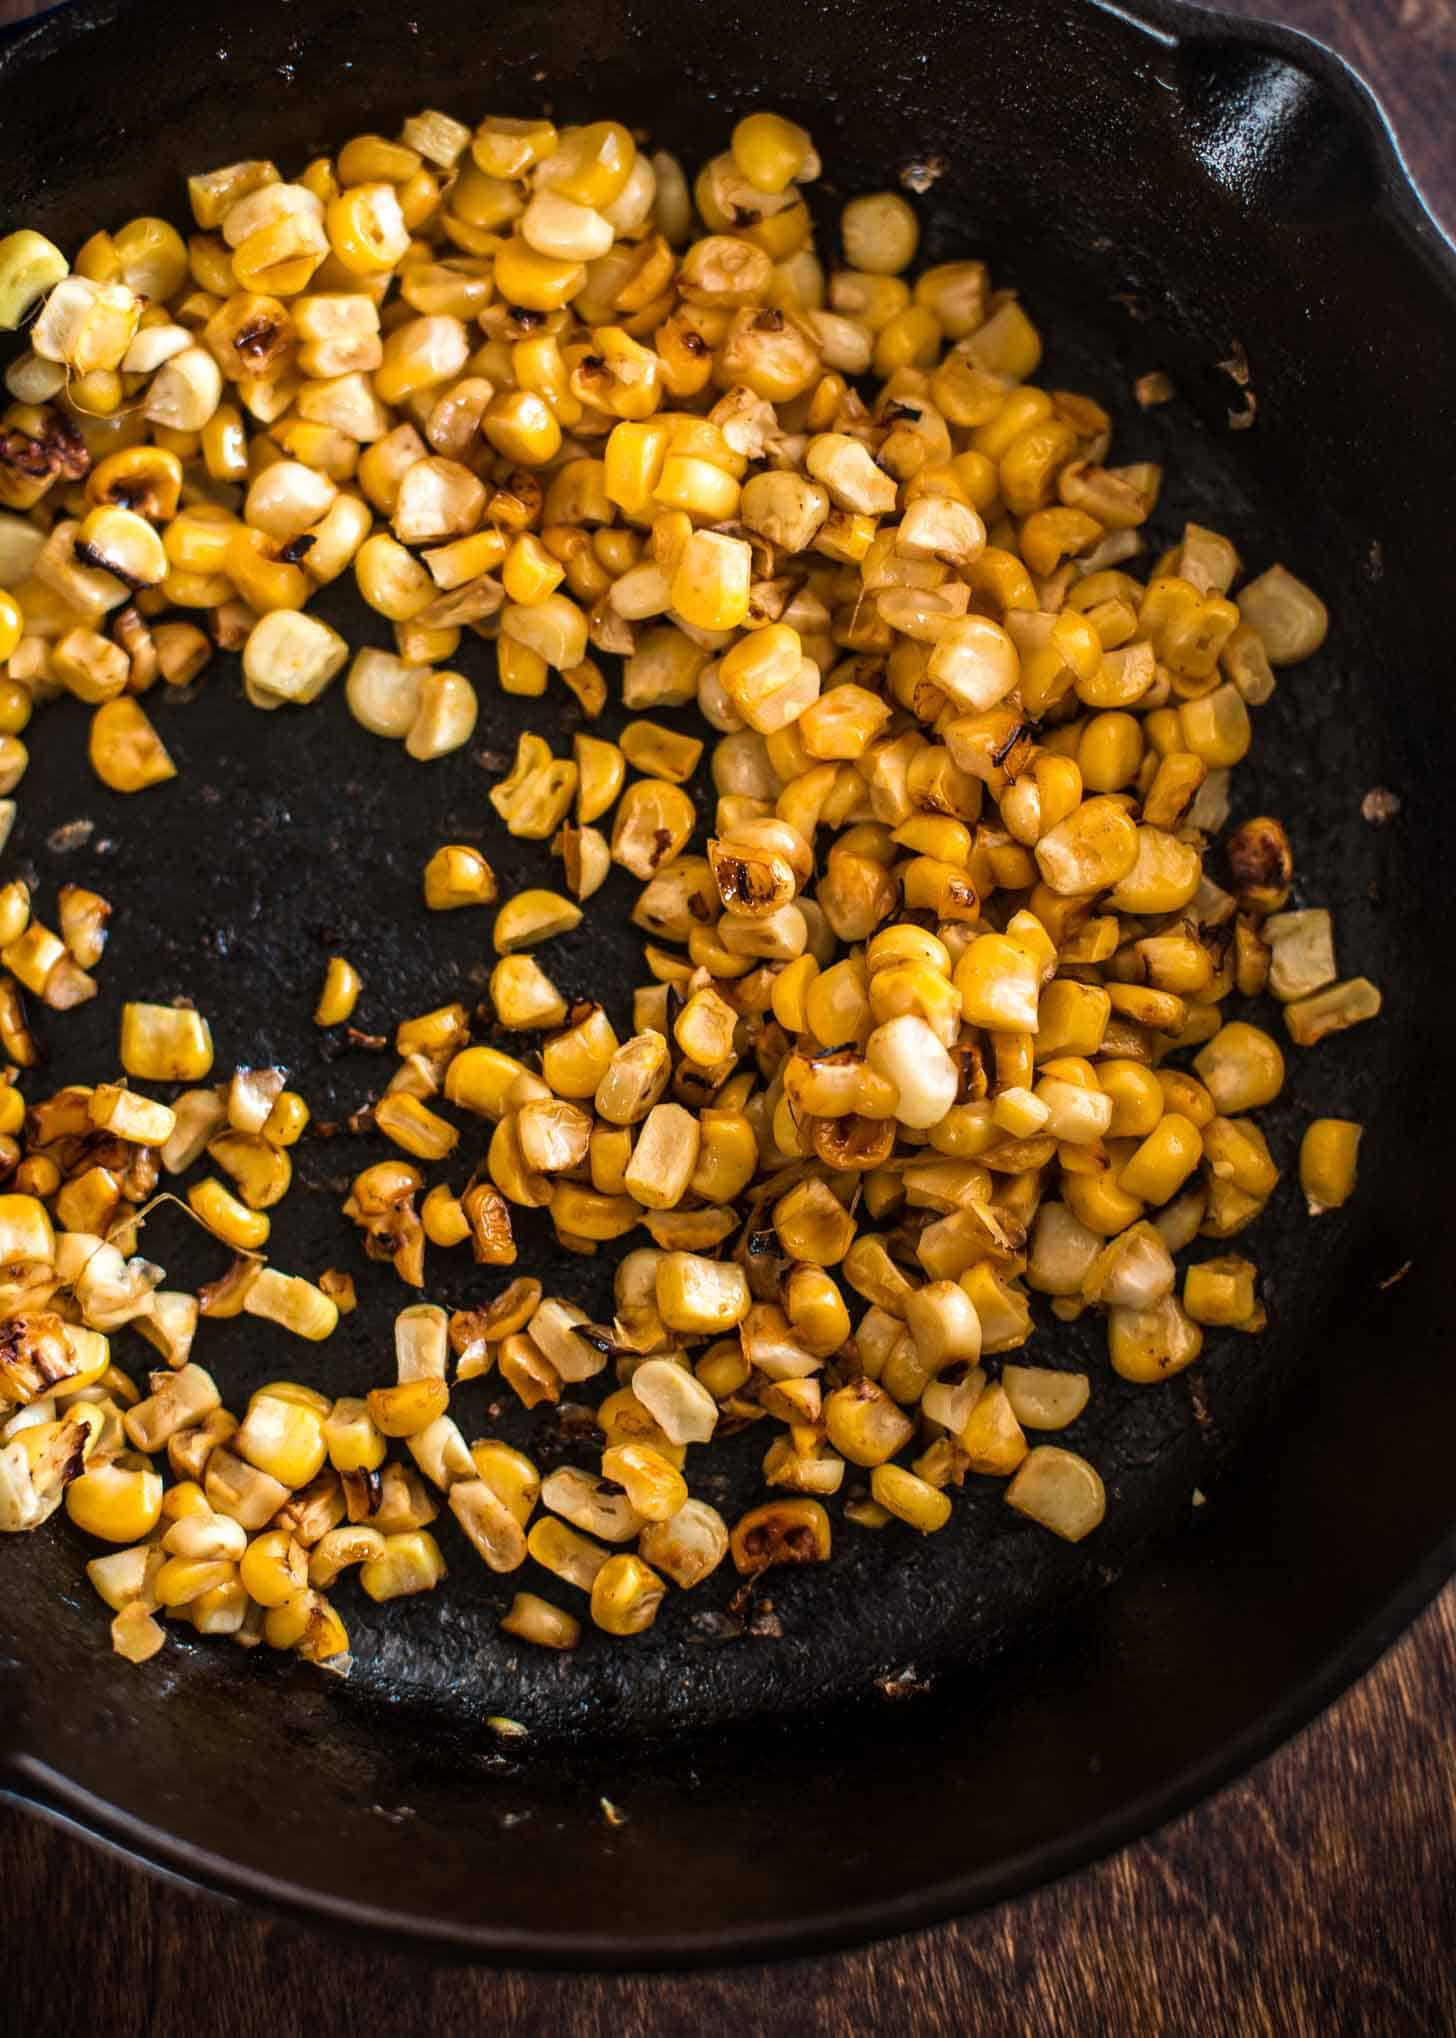 Charred Corn in a cast iron skillet